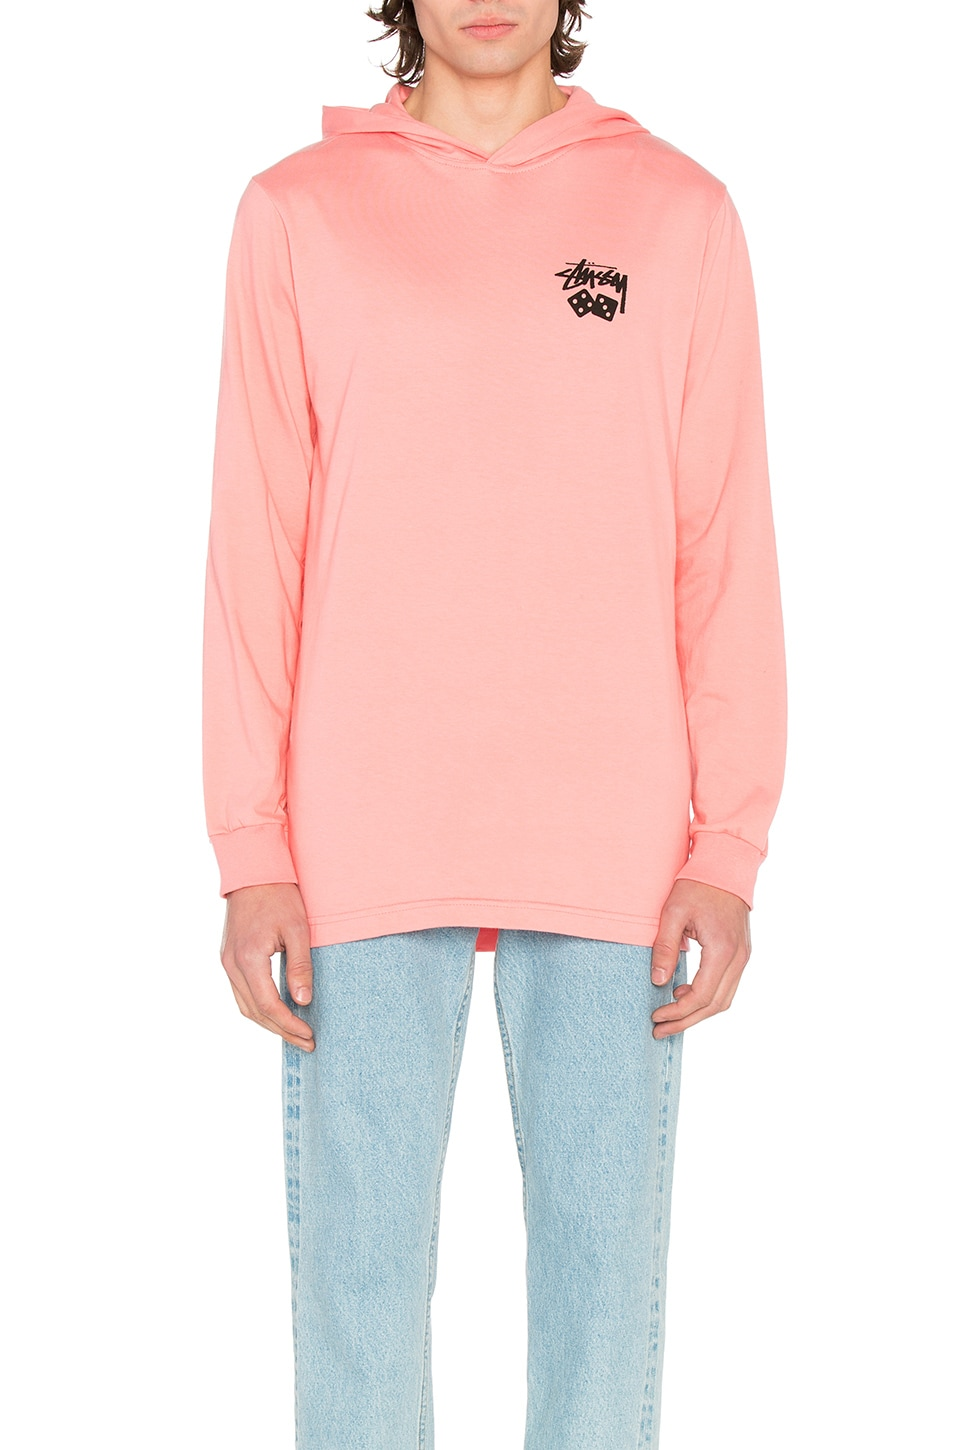 Photo of Dice Hooded Tee by Stussy men clothes